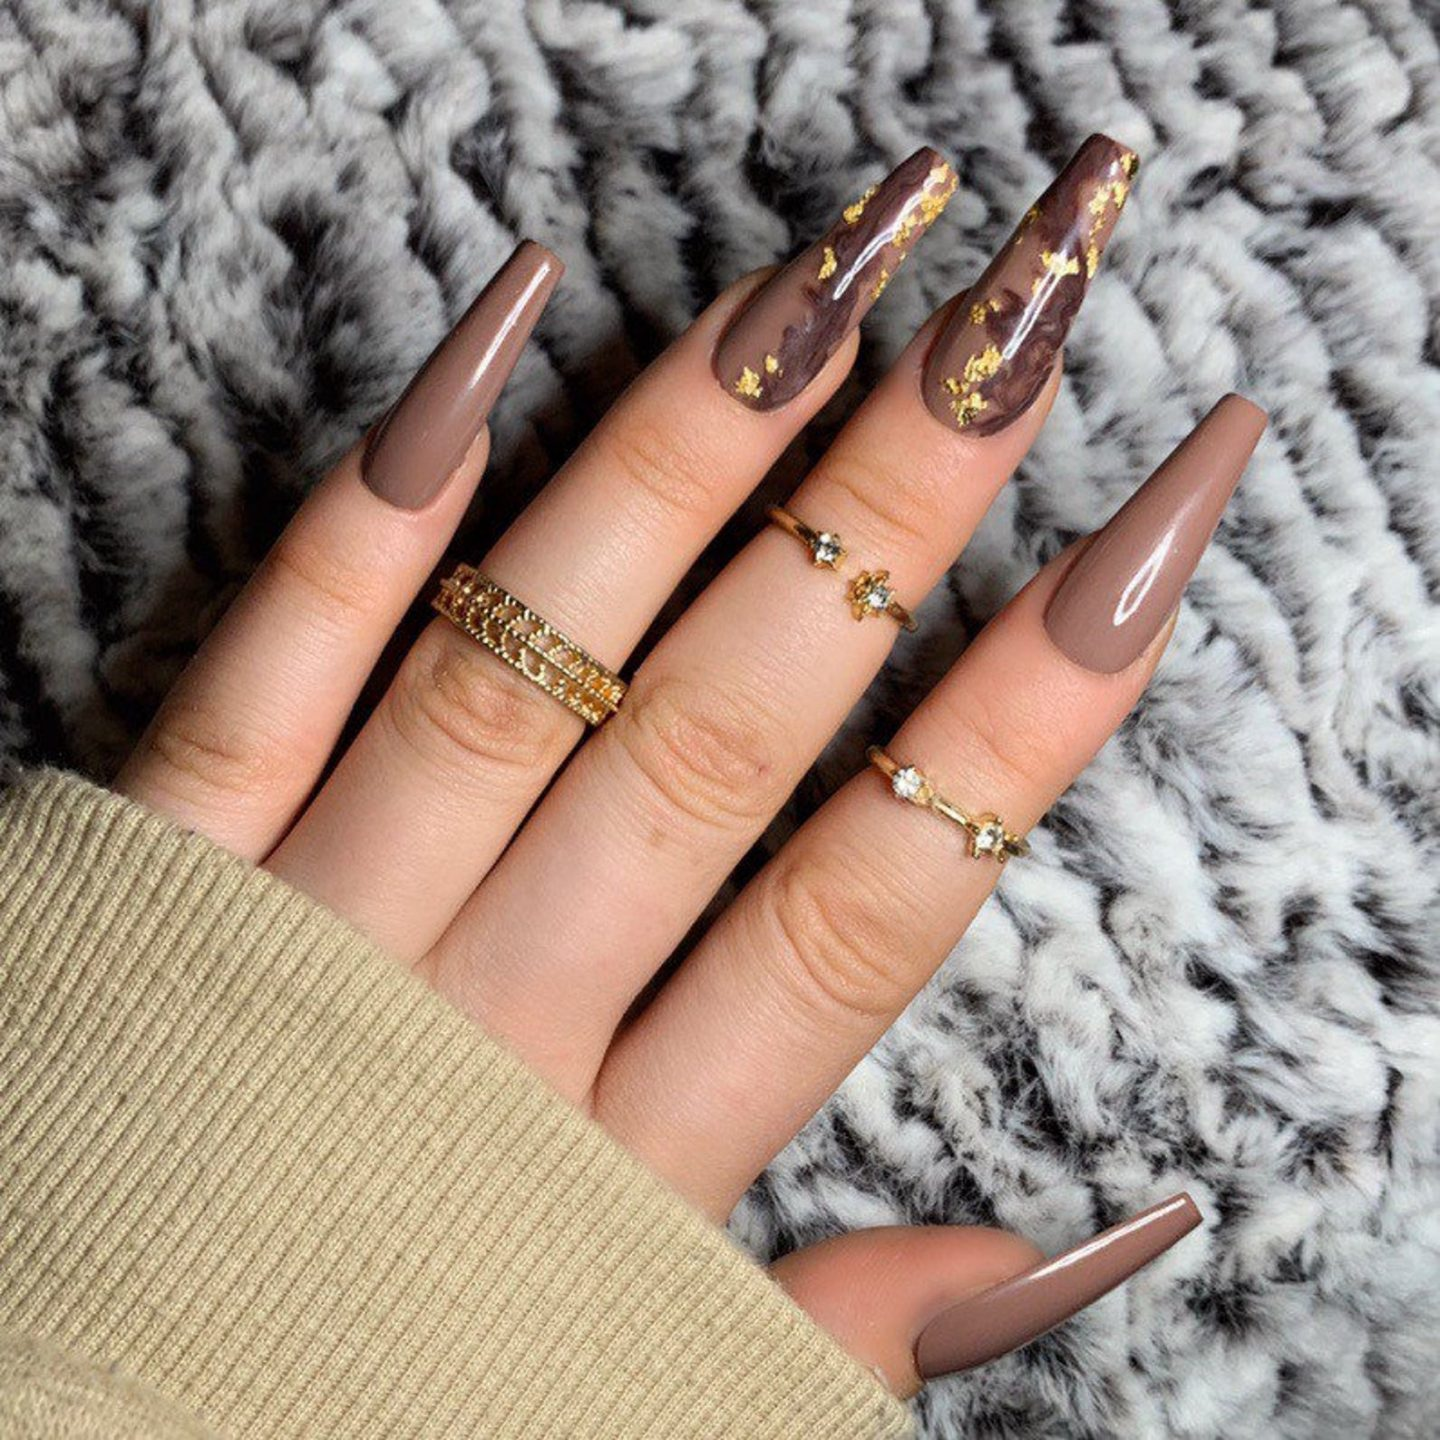 Brown marble nail designs with gold foil